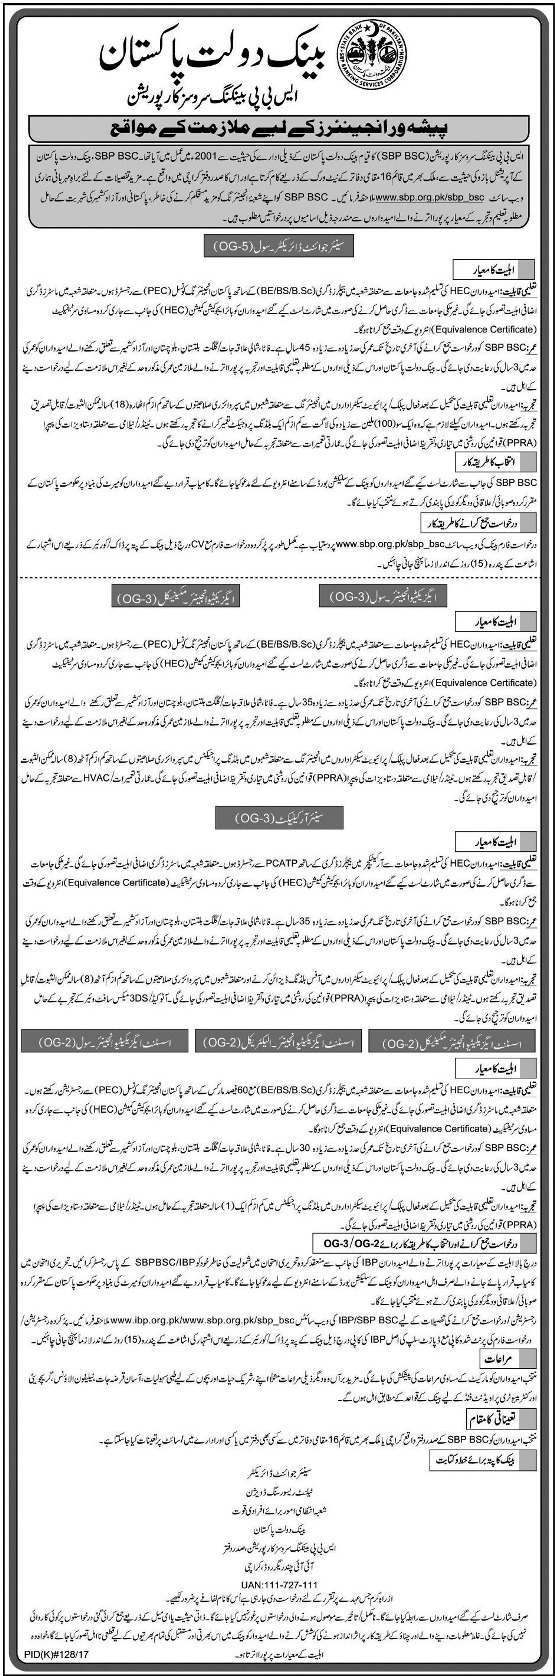 State Bank of Pakistan Jobs SBP Latest Jobs 2017